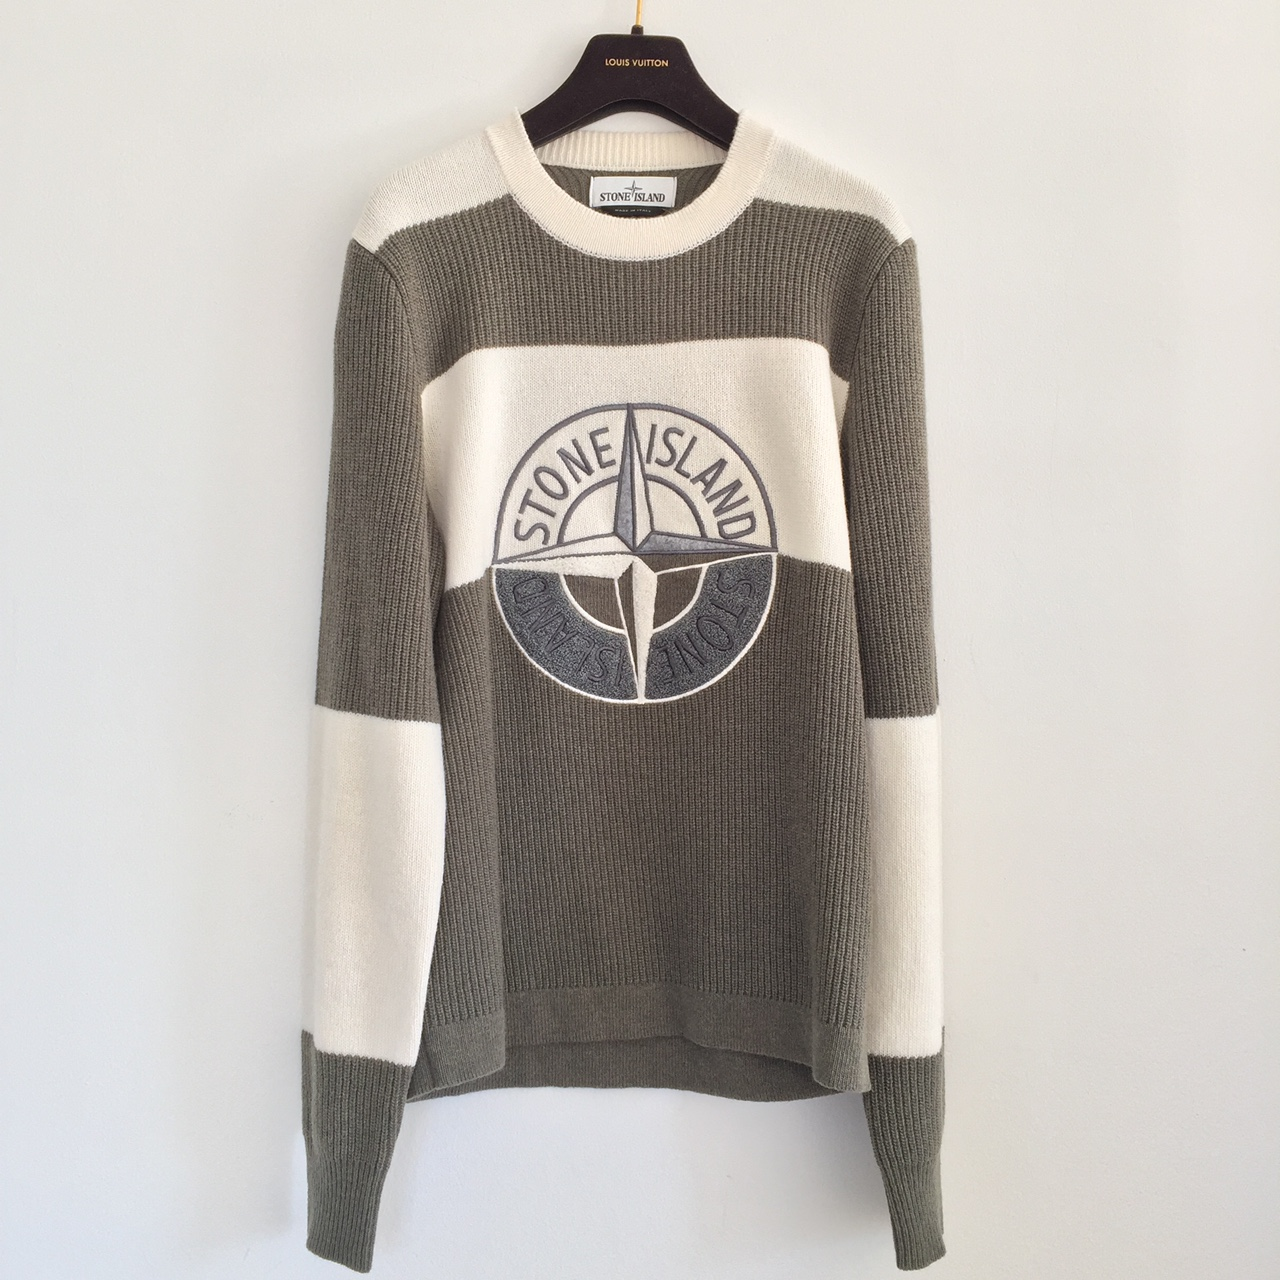 Product Image 1 - Authentic Stone Island Knitted Sweater